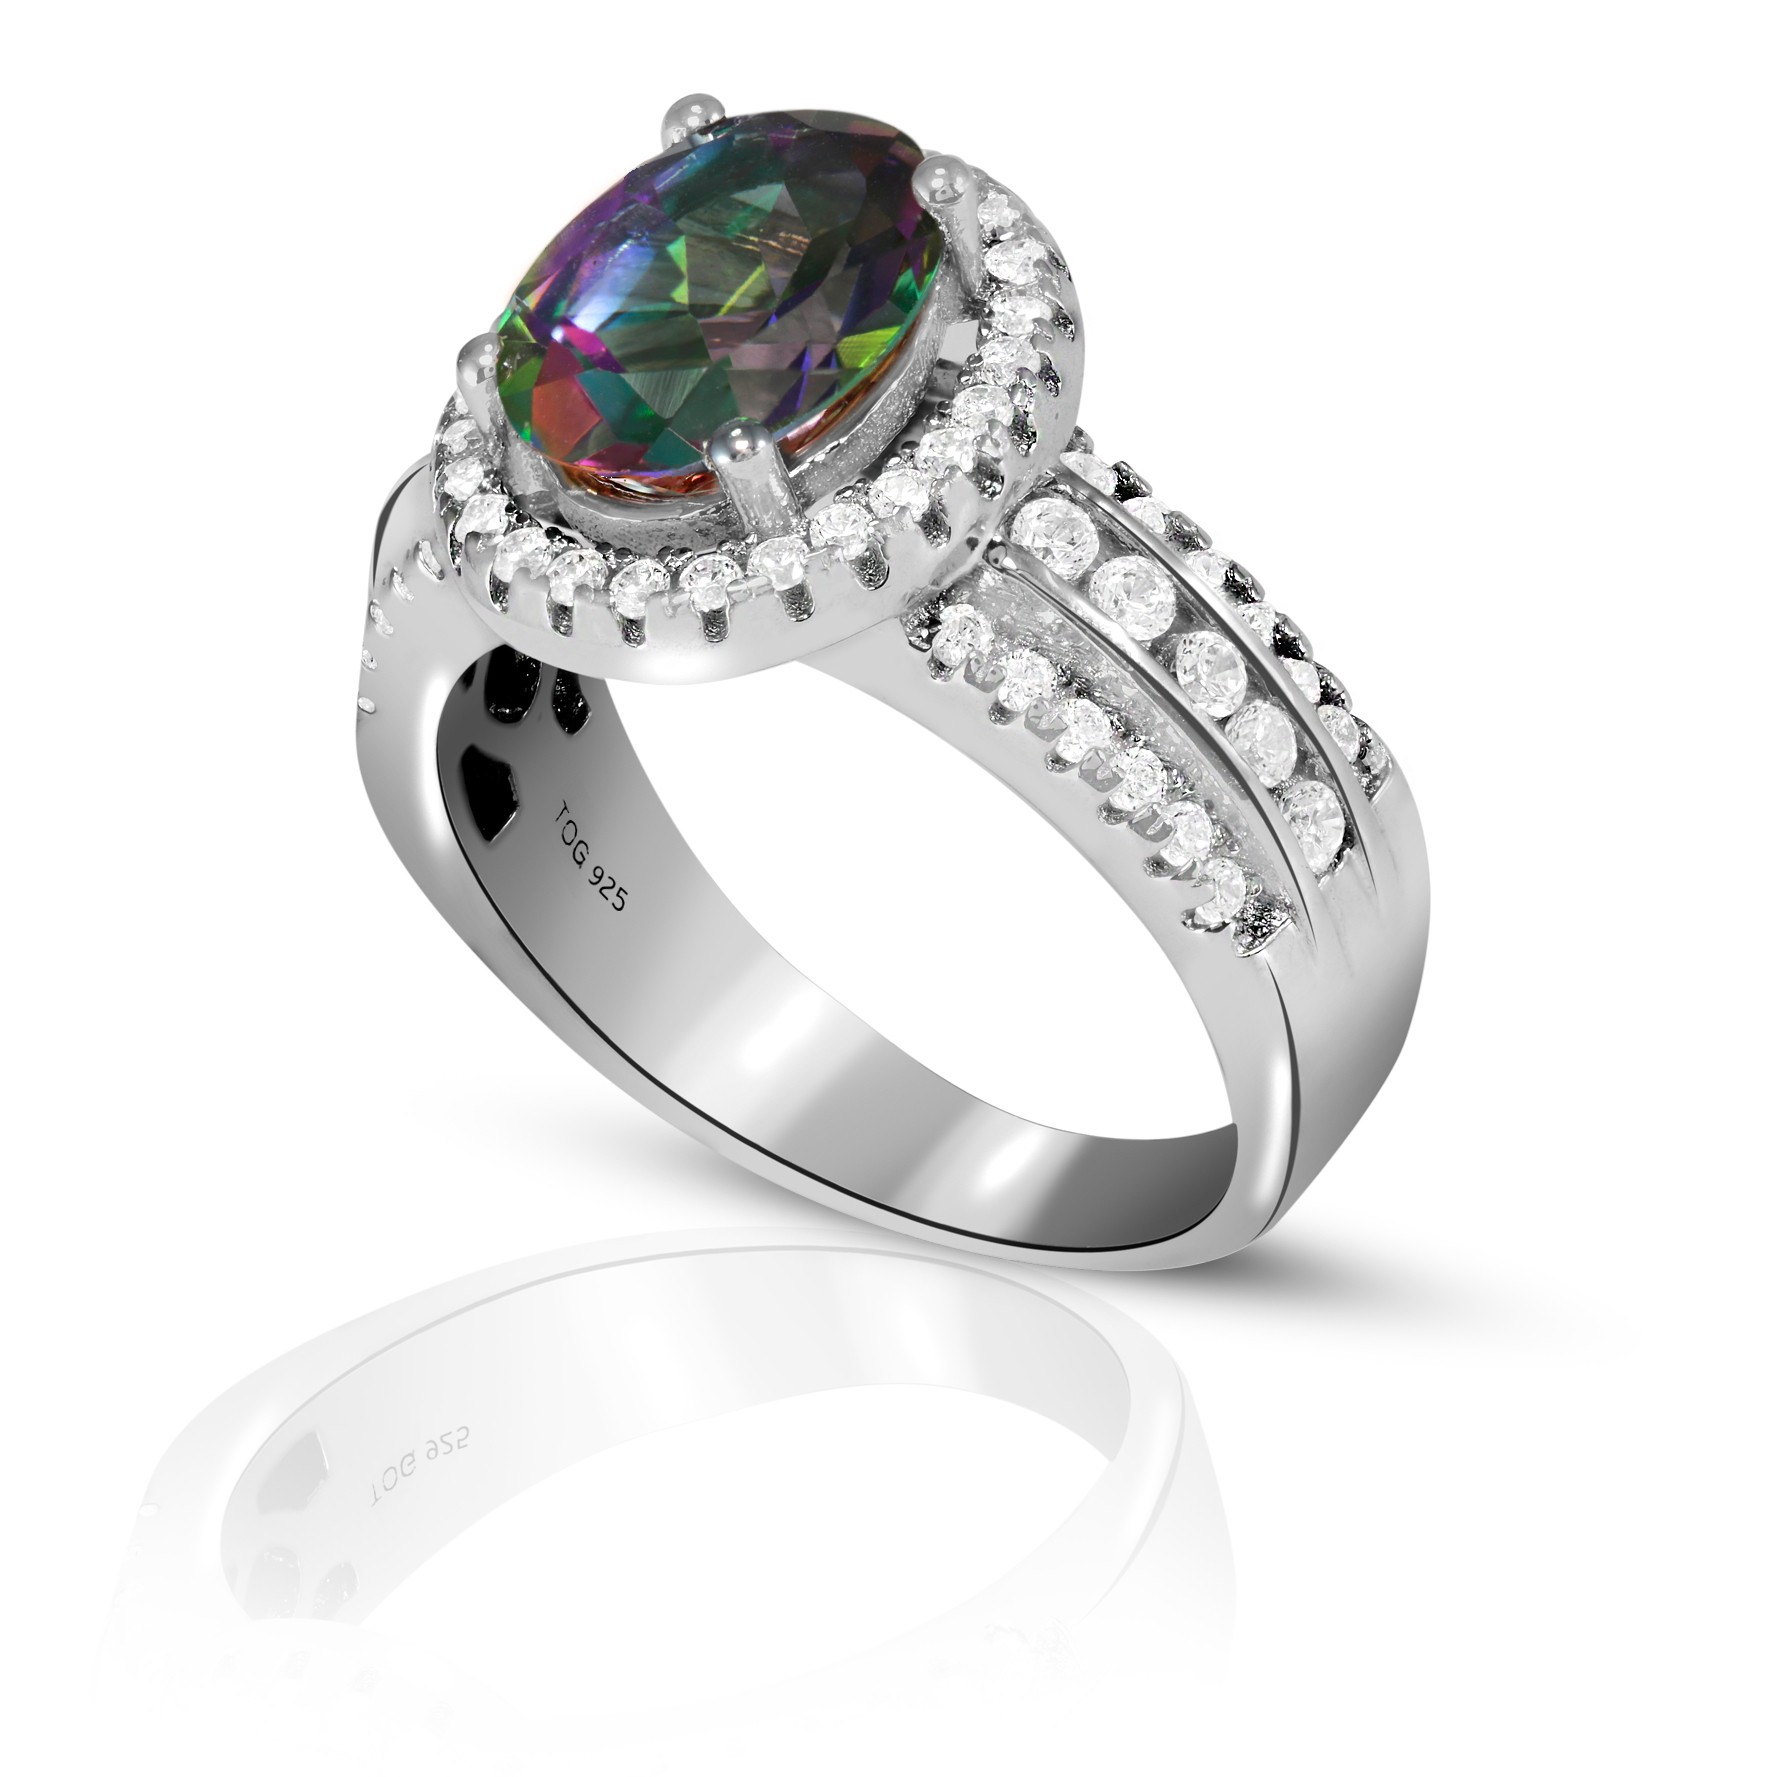 Sparkling Rainbow and White Topaz Ring set in Sterling Silver